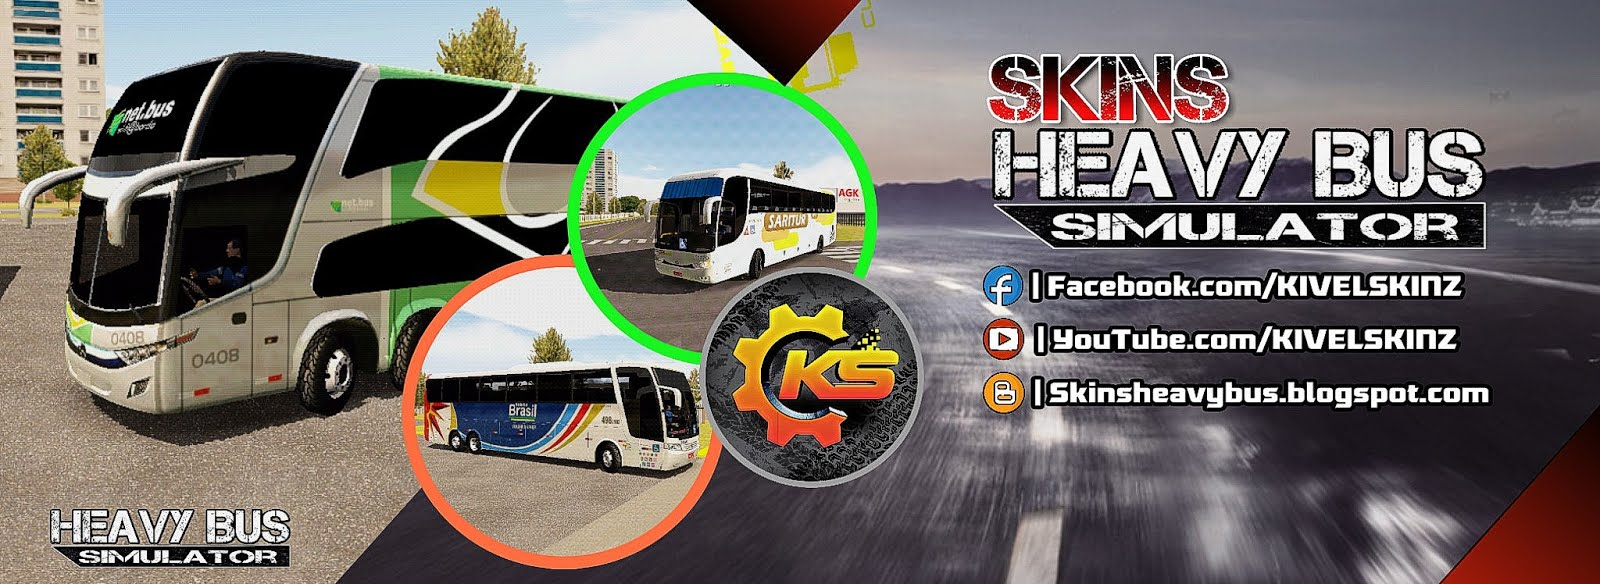 SKINS HEAVY BUS SIMULATOR